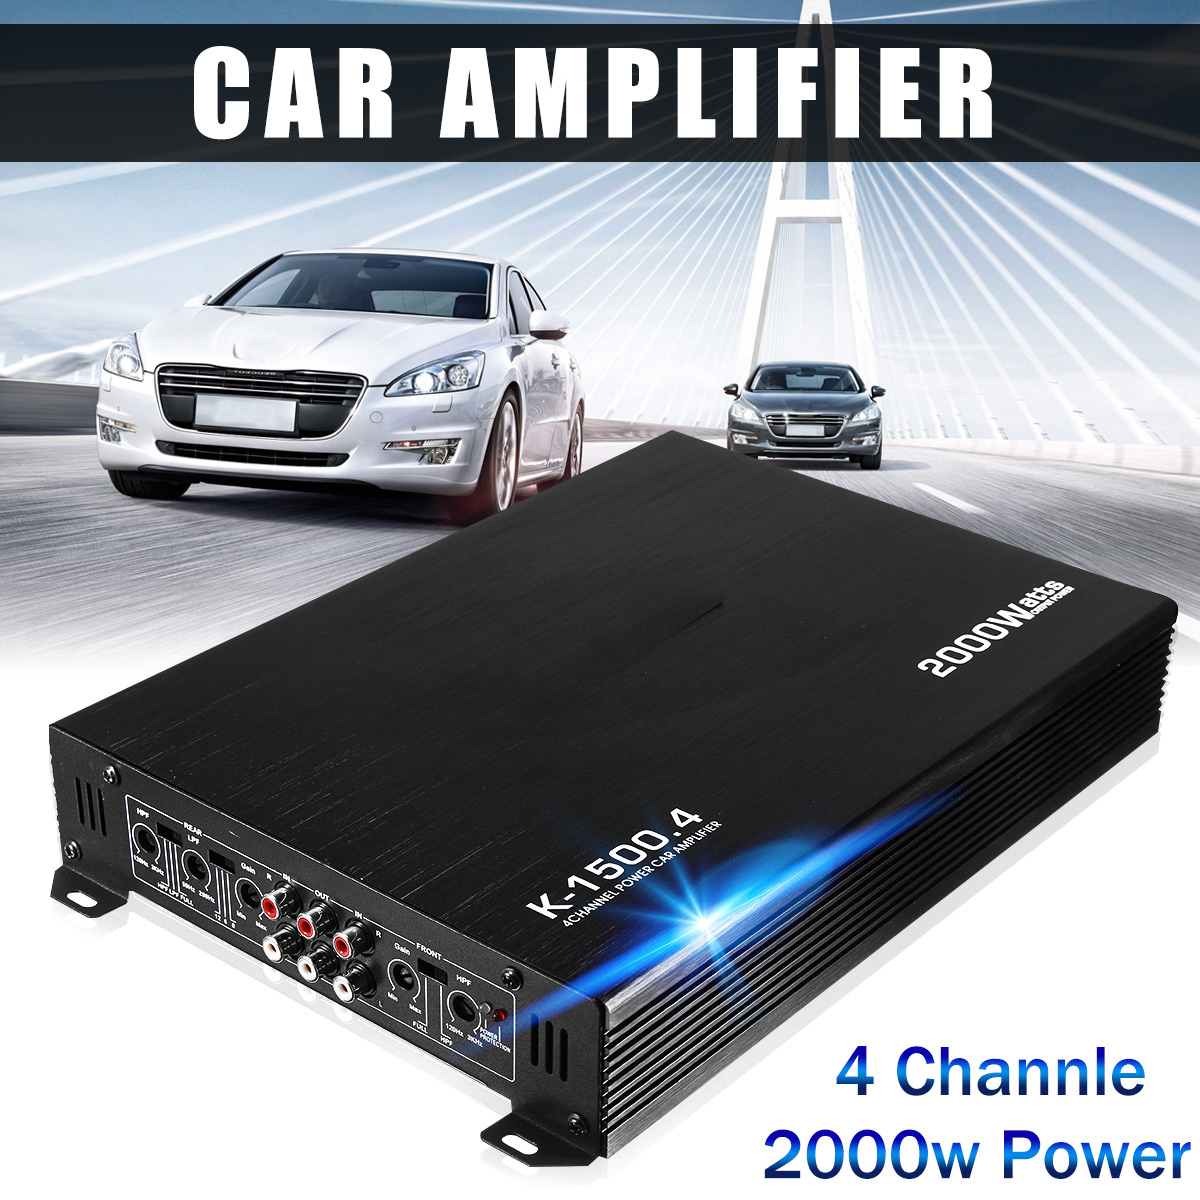 2000w 4 Channel Car Amplifier Speaker Vehicle Auto Audio How To Hook Up A 6bass Boost12db 7speaker Impedance216 8input Sensitivity200mv 9s N Ratio85db 10installation Dimension 33022058mm 11amplifier Typeab Type